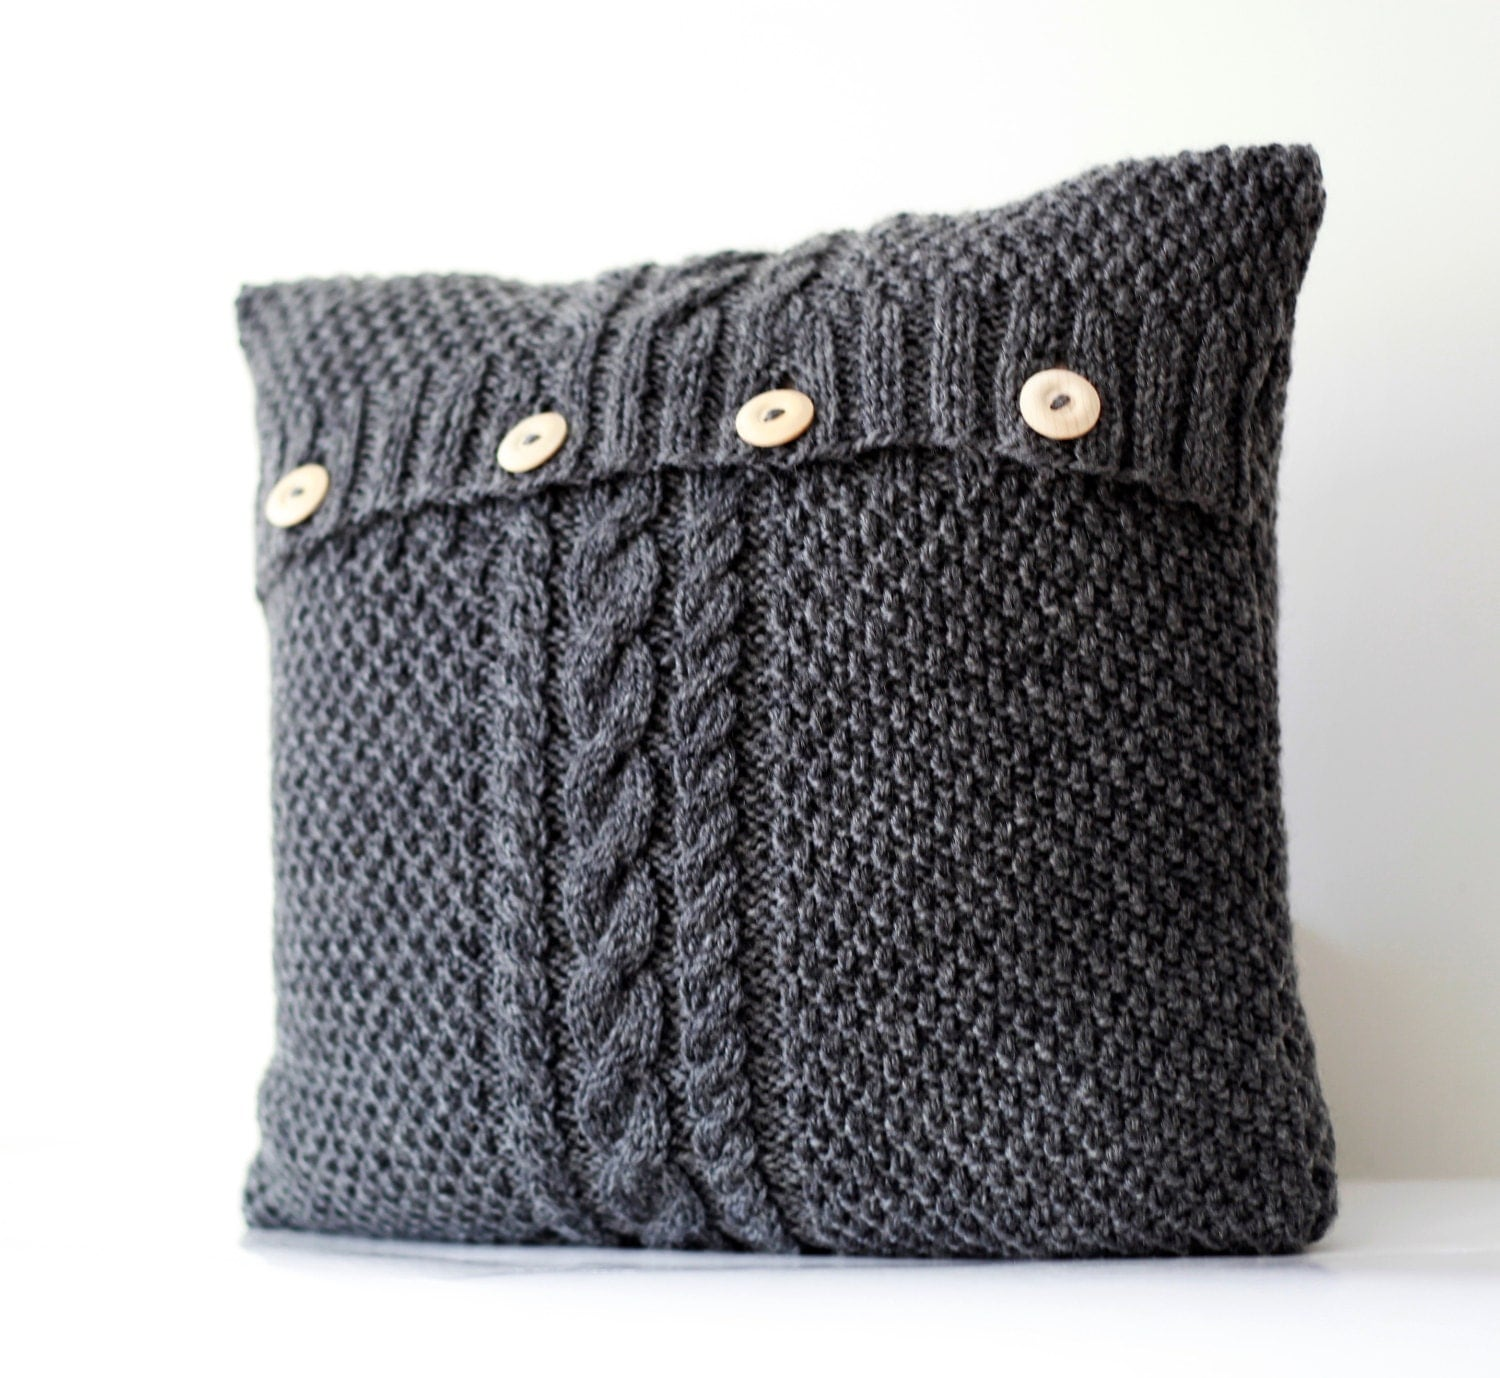 Knitting Pillows : Hand knitted gray pillow cover cable knit decorative